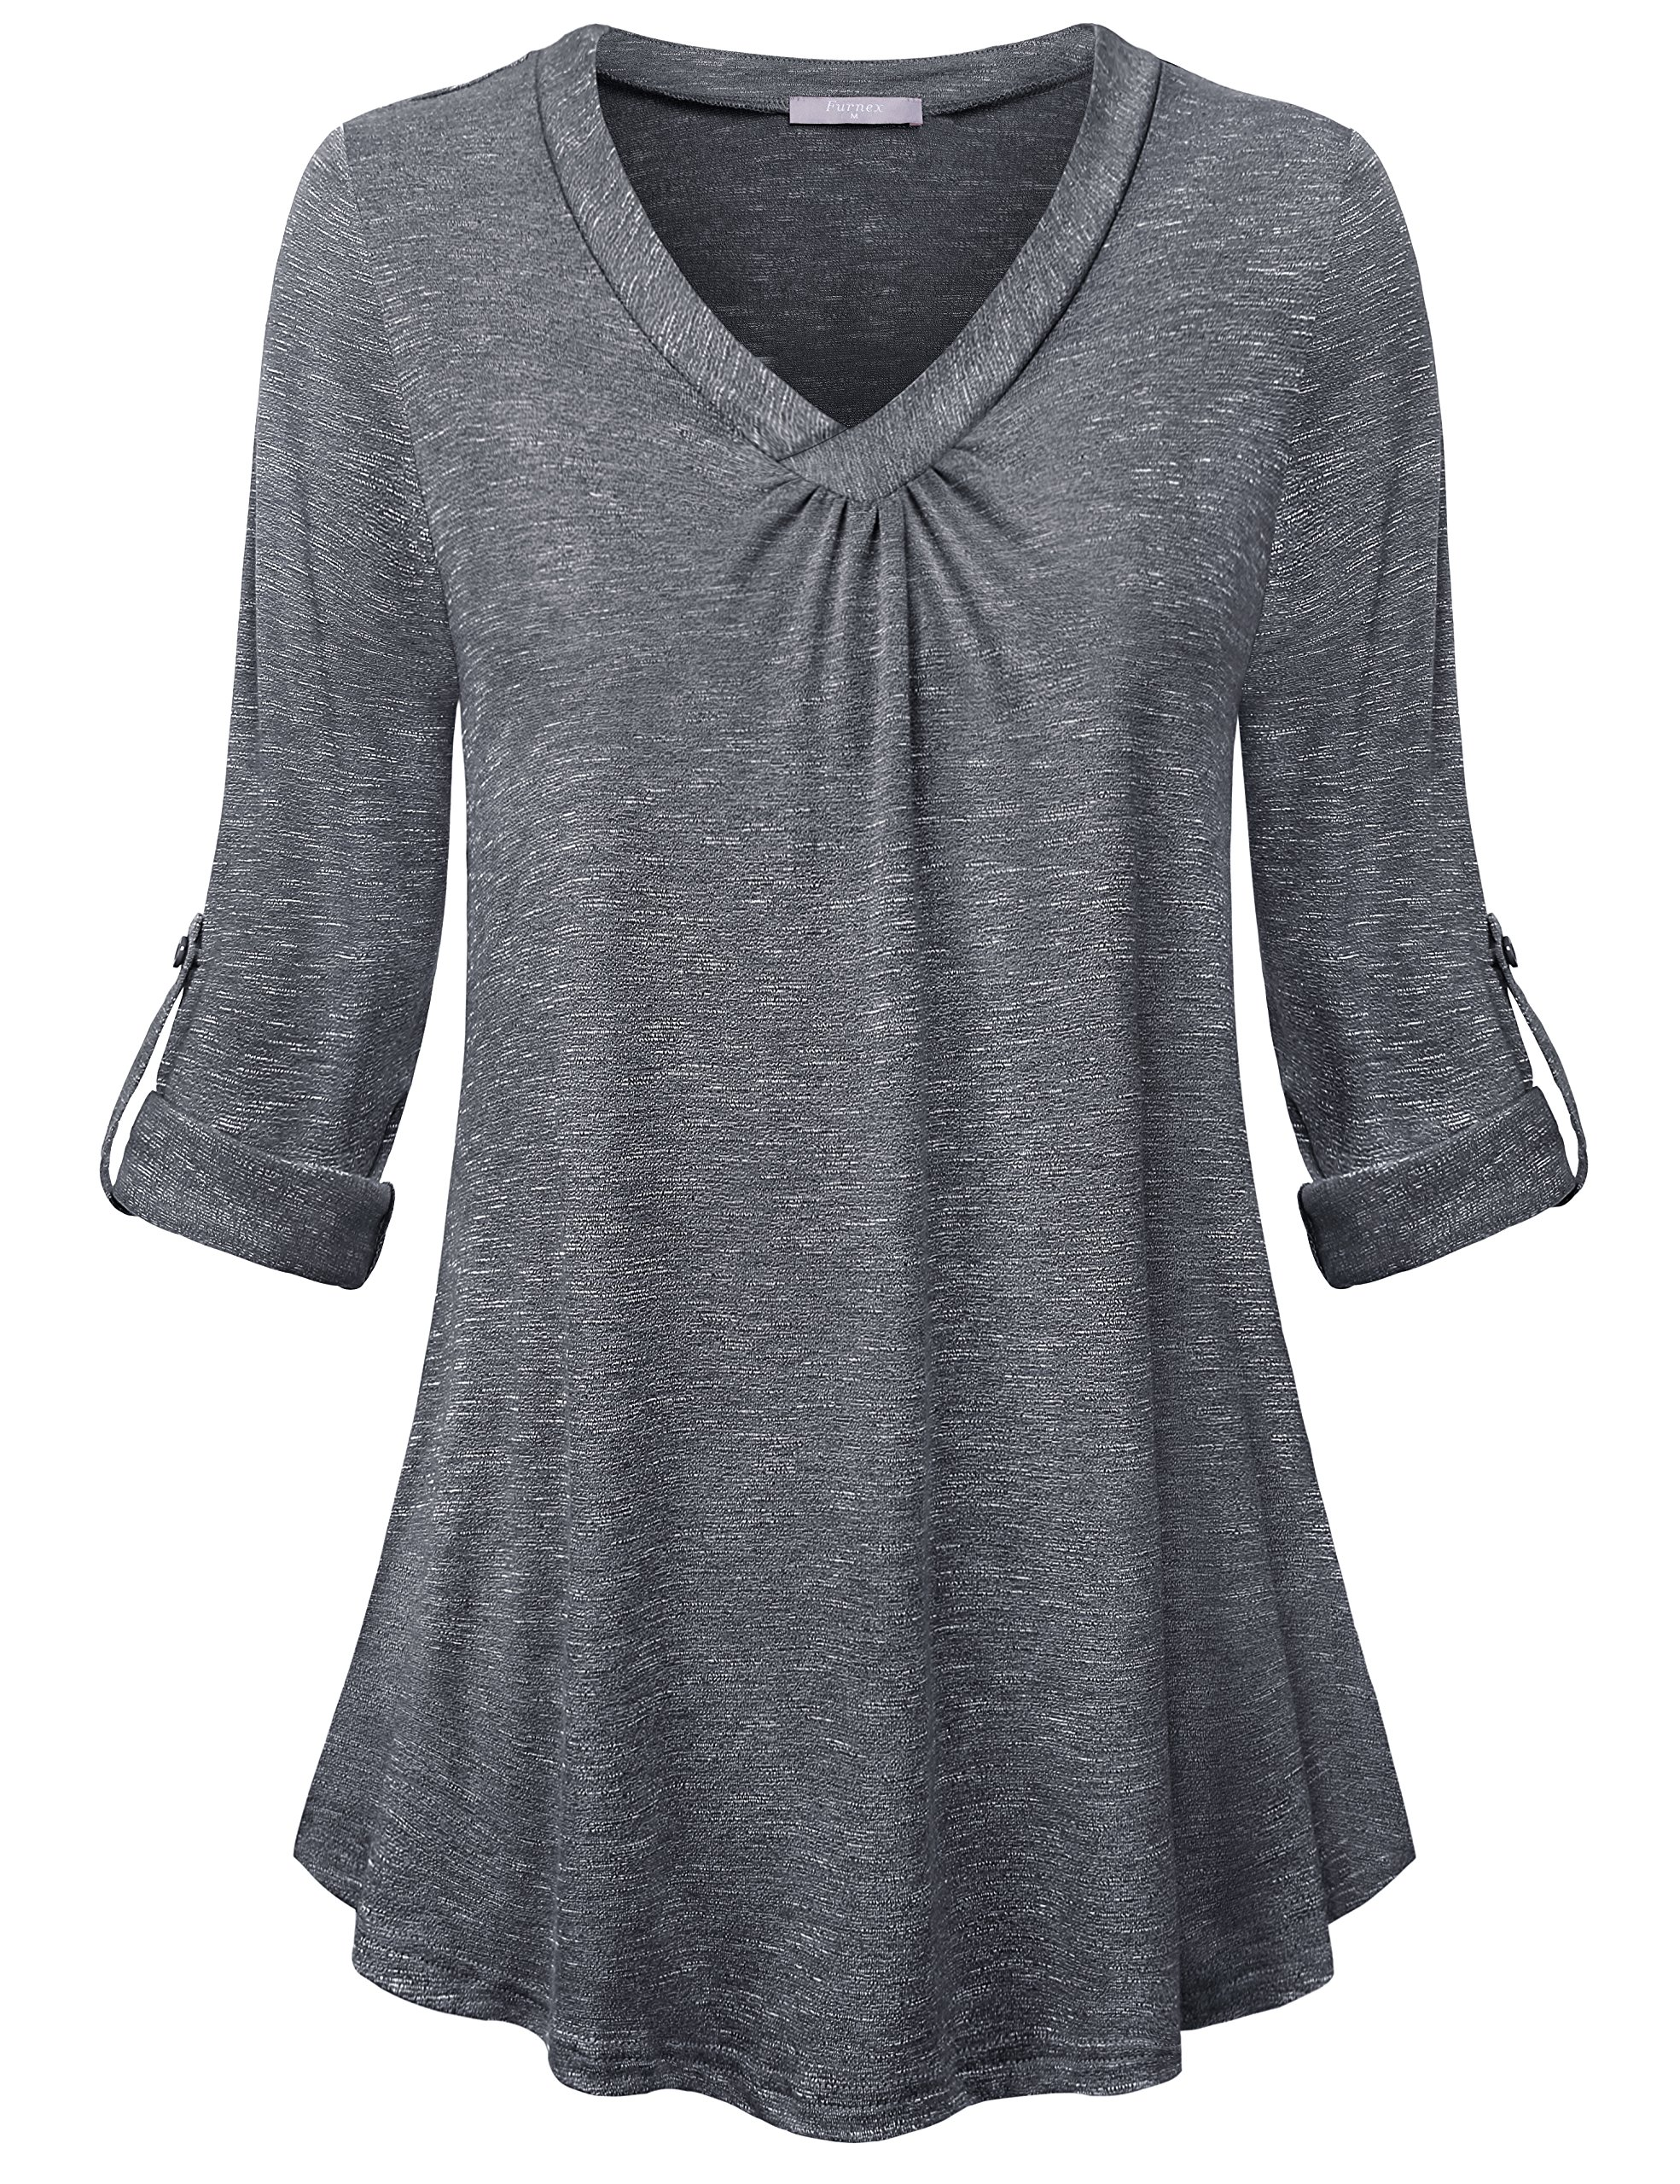 Furnex Plus Size Tunic Tops, Cuffed Sleeve Shirts for Women Casual Loose Fit Shirt V-Neck Pleated Hem Knit Tunics for Women Office Work to wear with Leggings Dark Grey Large